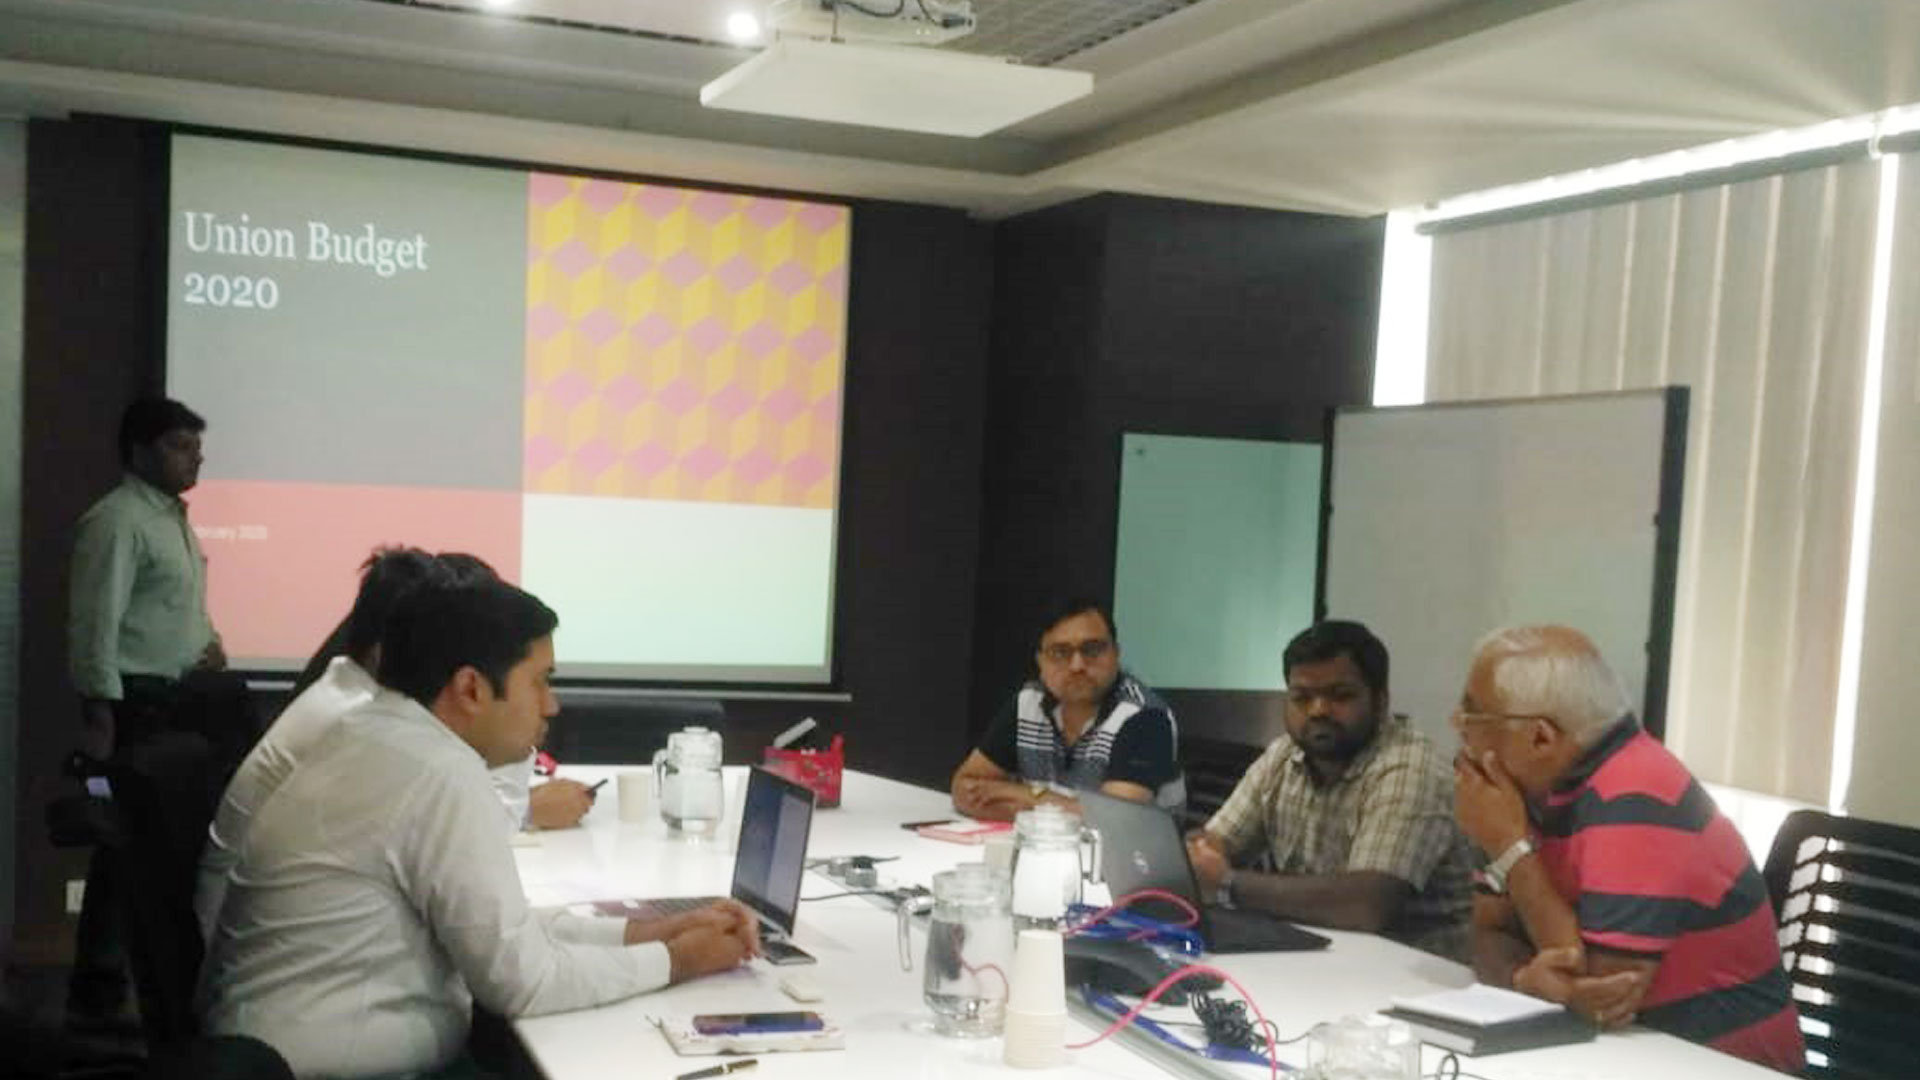 NBAI CONDUCTED UNION BUDGET & IND AS SESSION